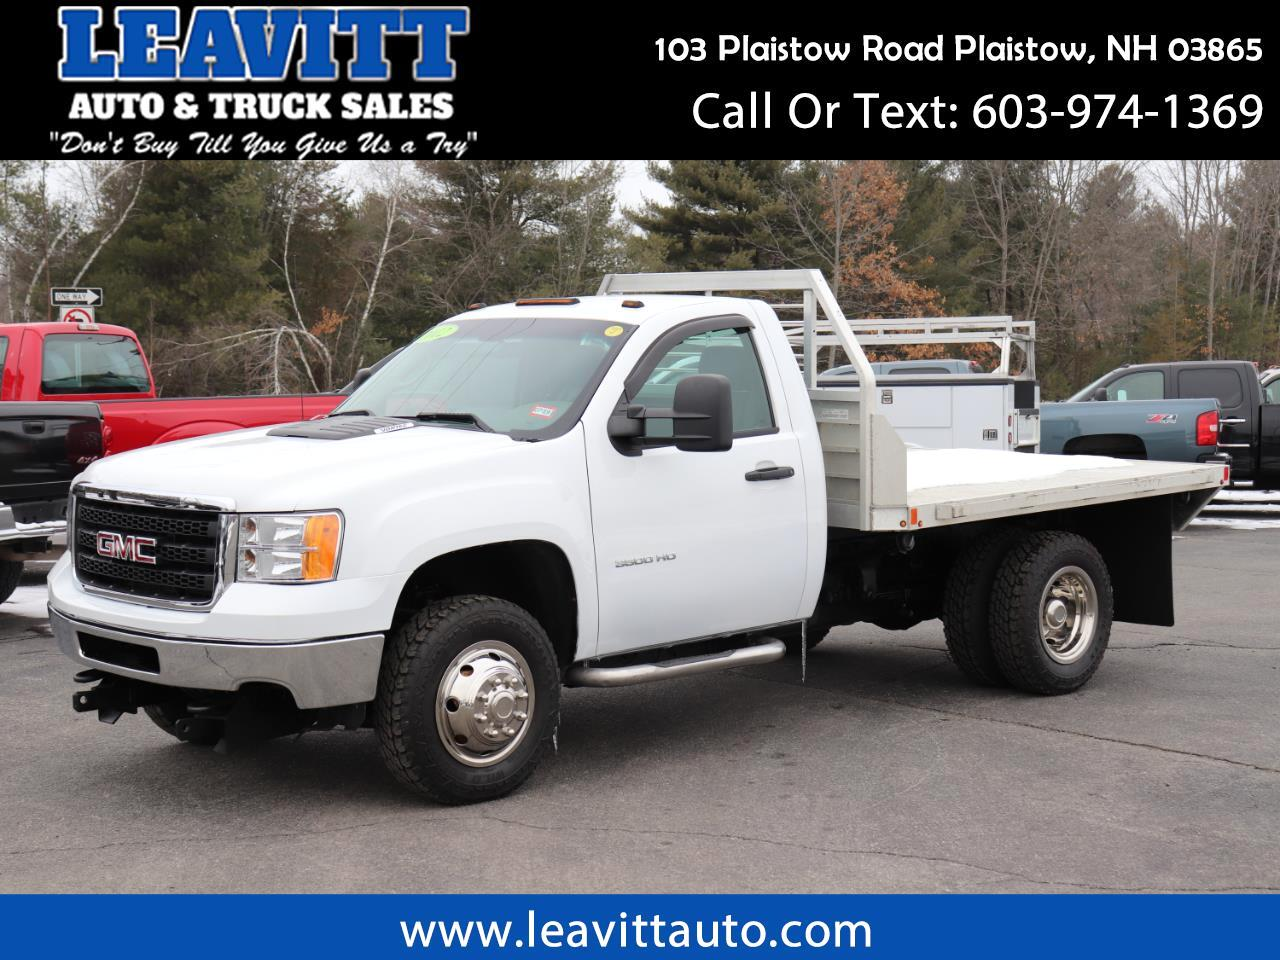 2012 GMC Sierra 3500HD DUALLY FLAT BED 37K MILES!!